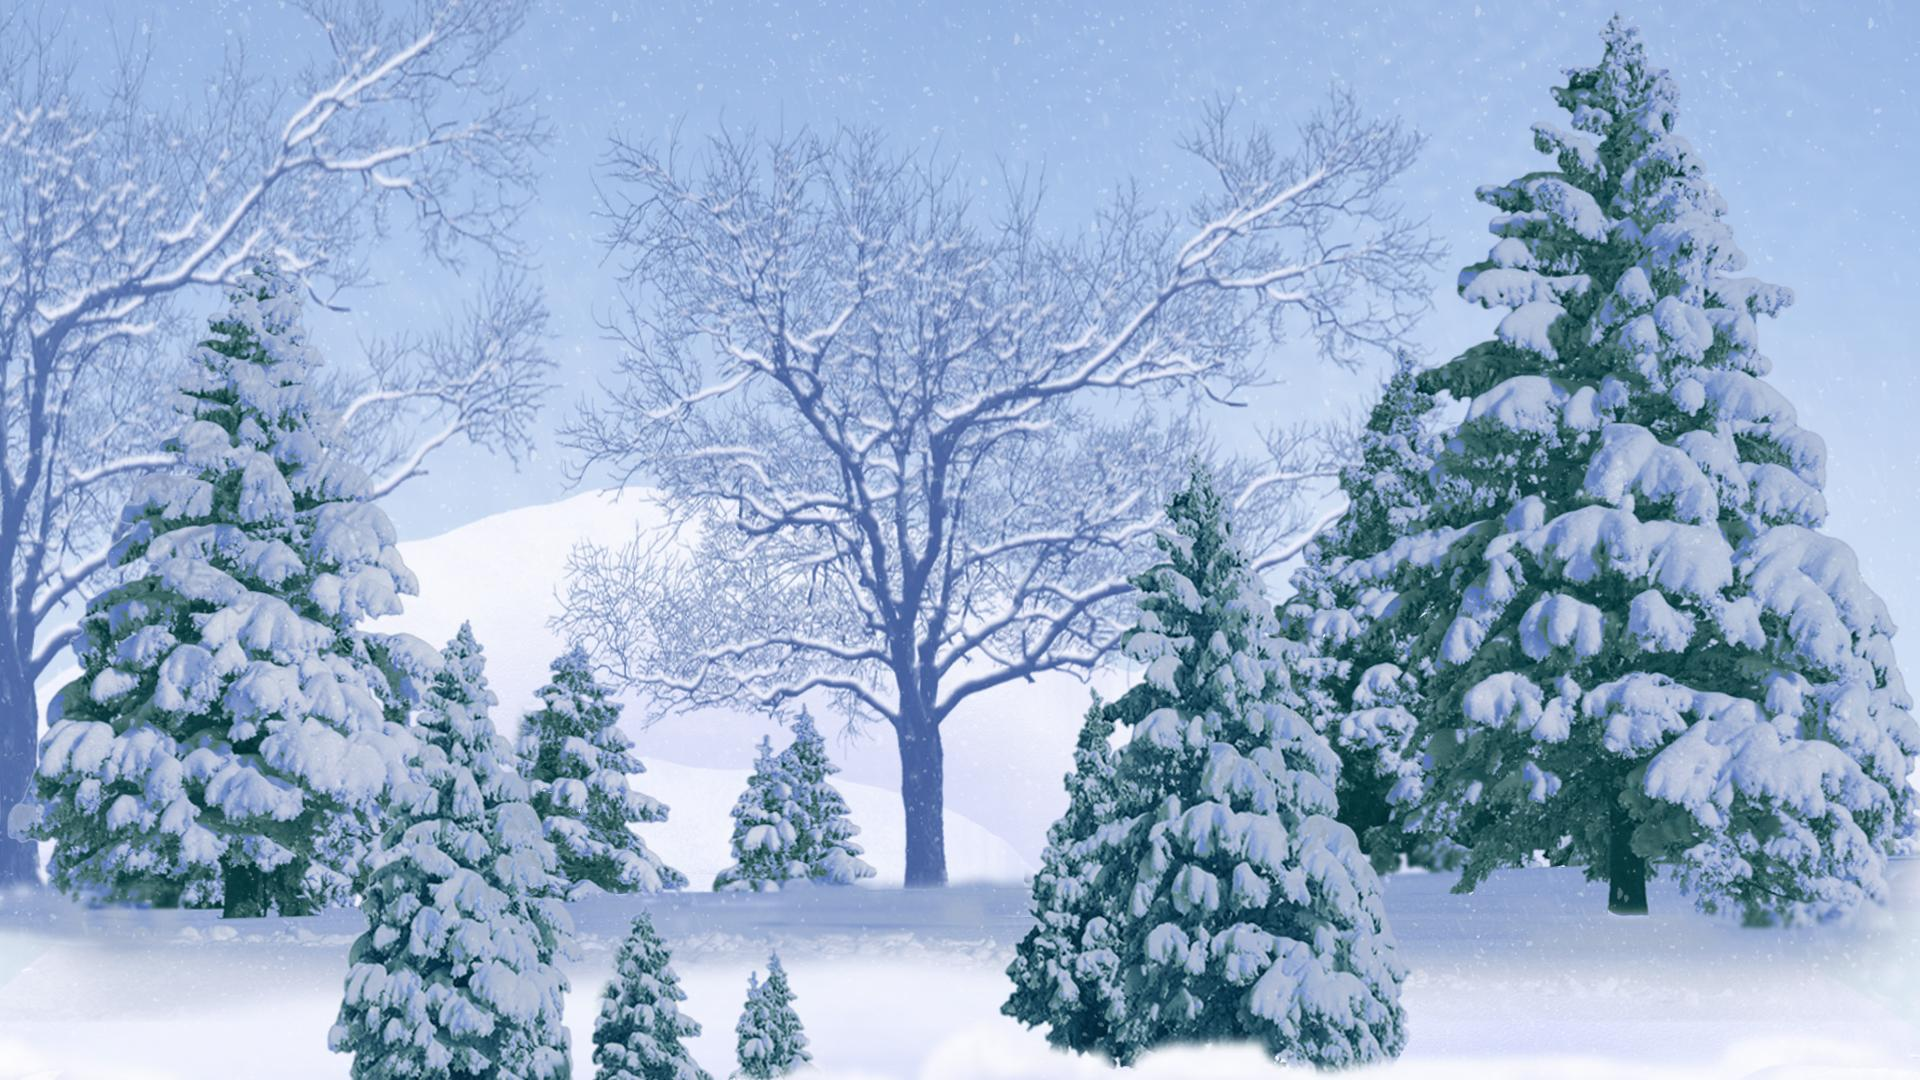 backgrounds winter white wallpaper background trees snow 1920x1080